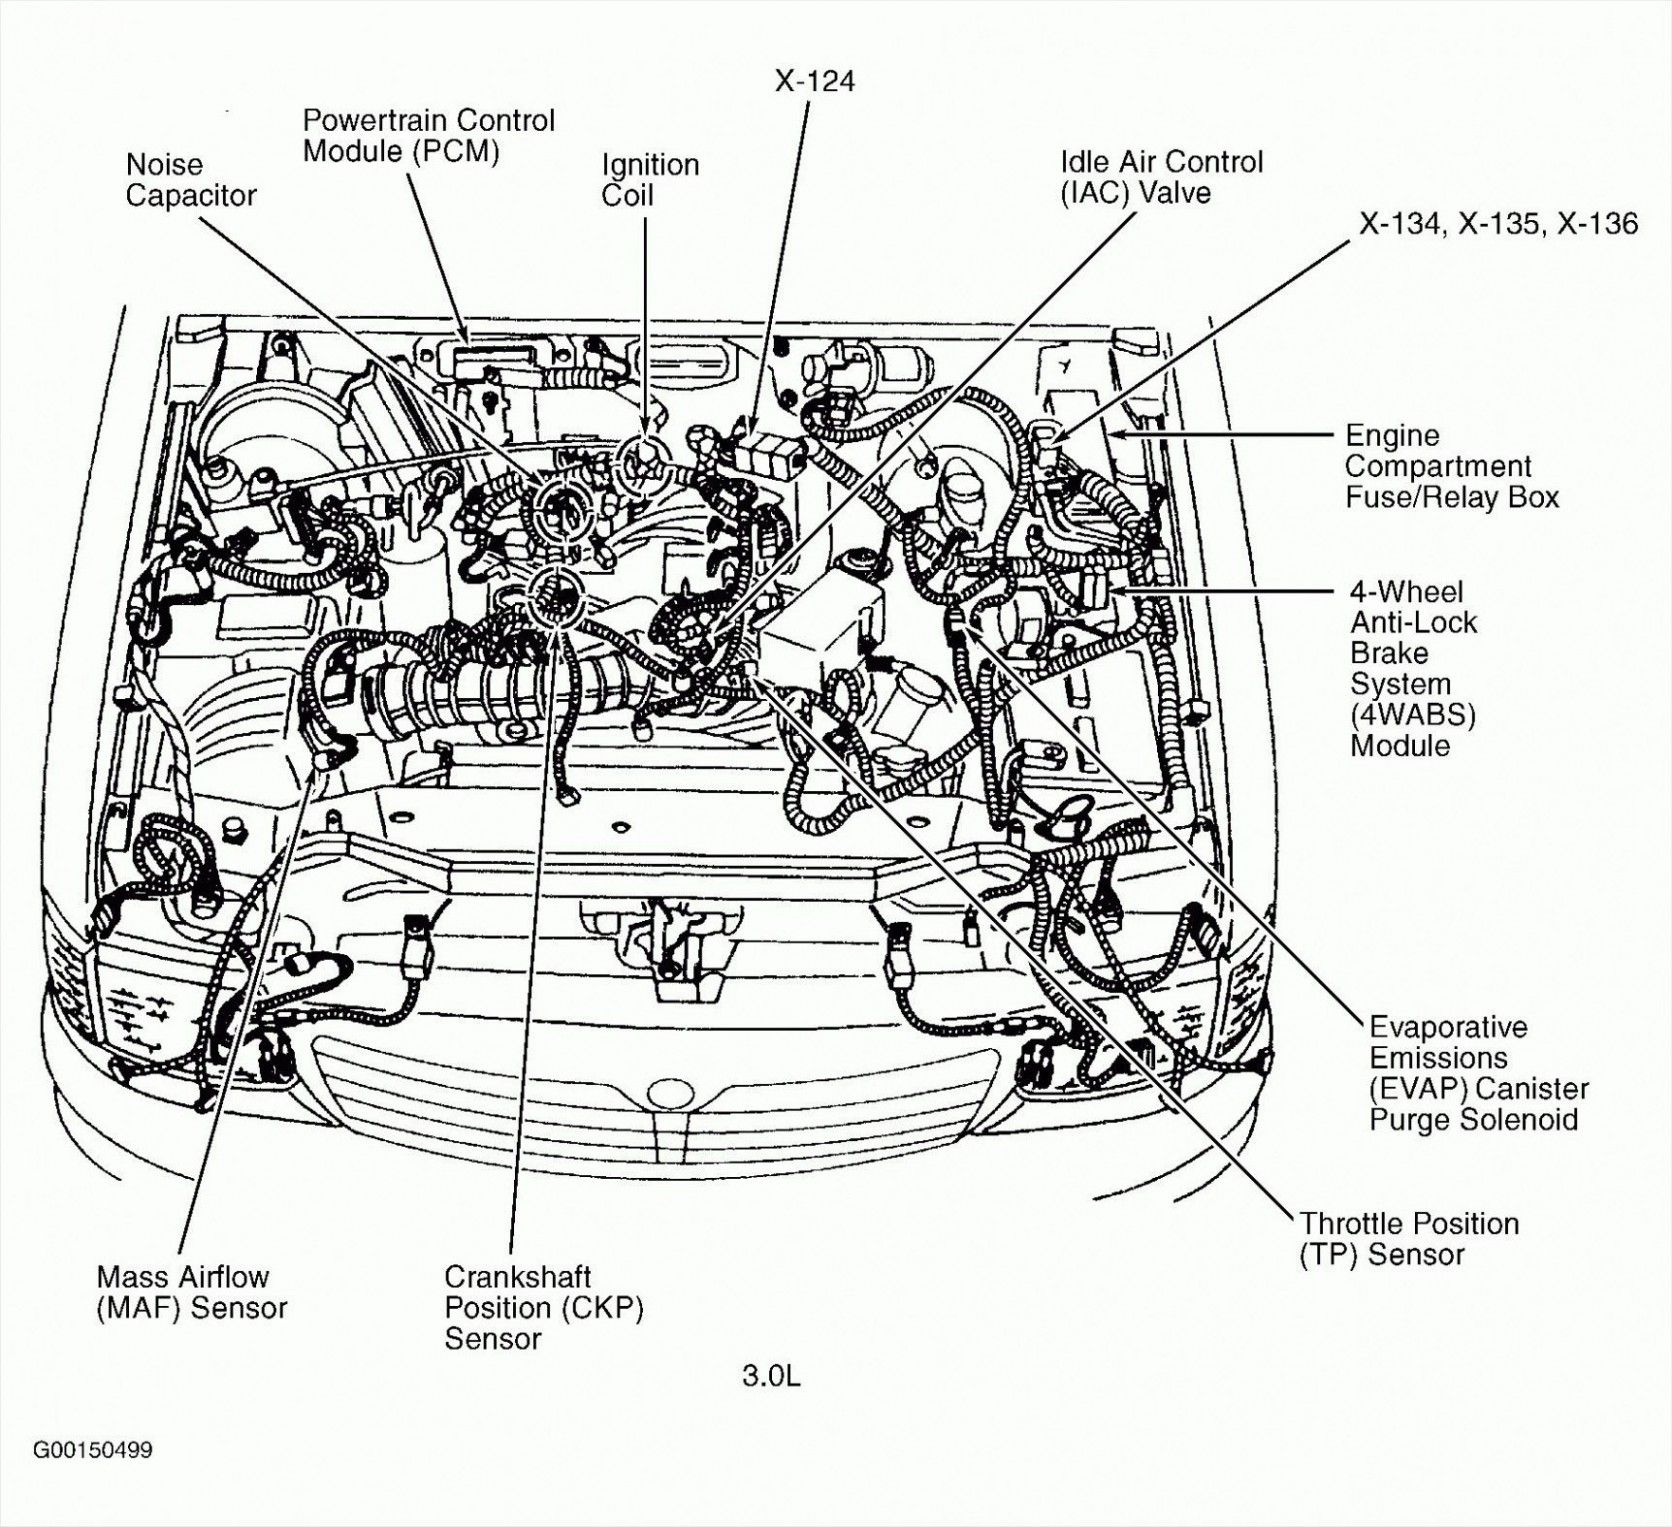 7 Lincoln Ls V7 Engine Diagram 7 Lincoln Ls V7 Engine